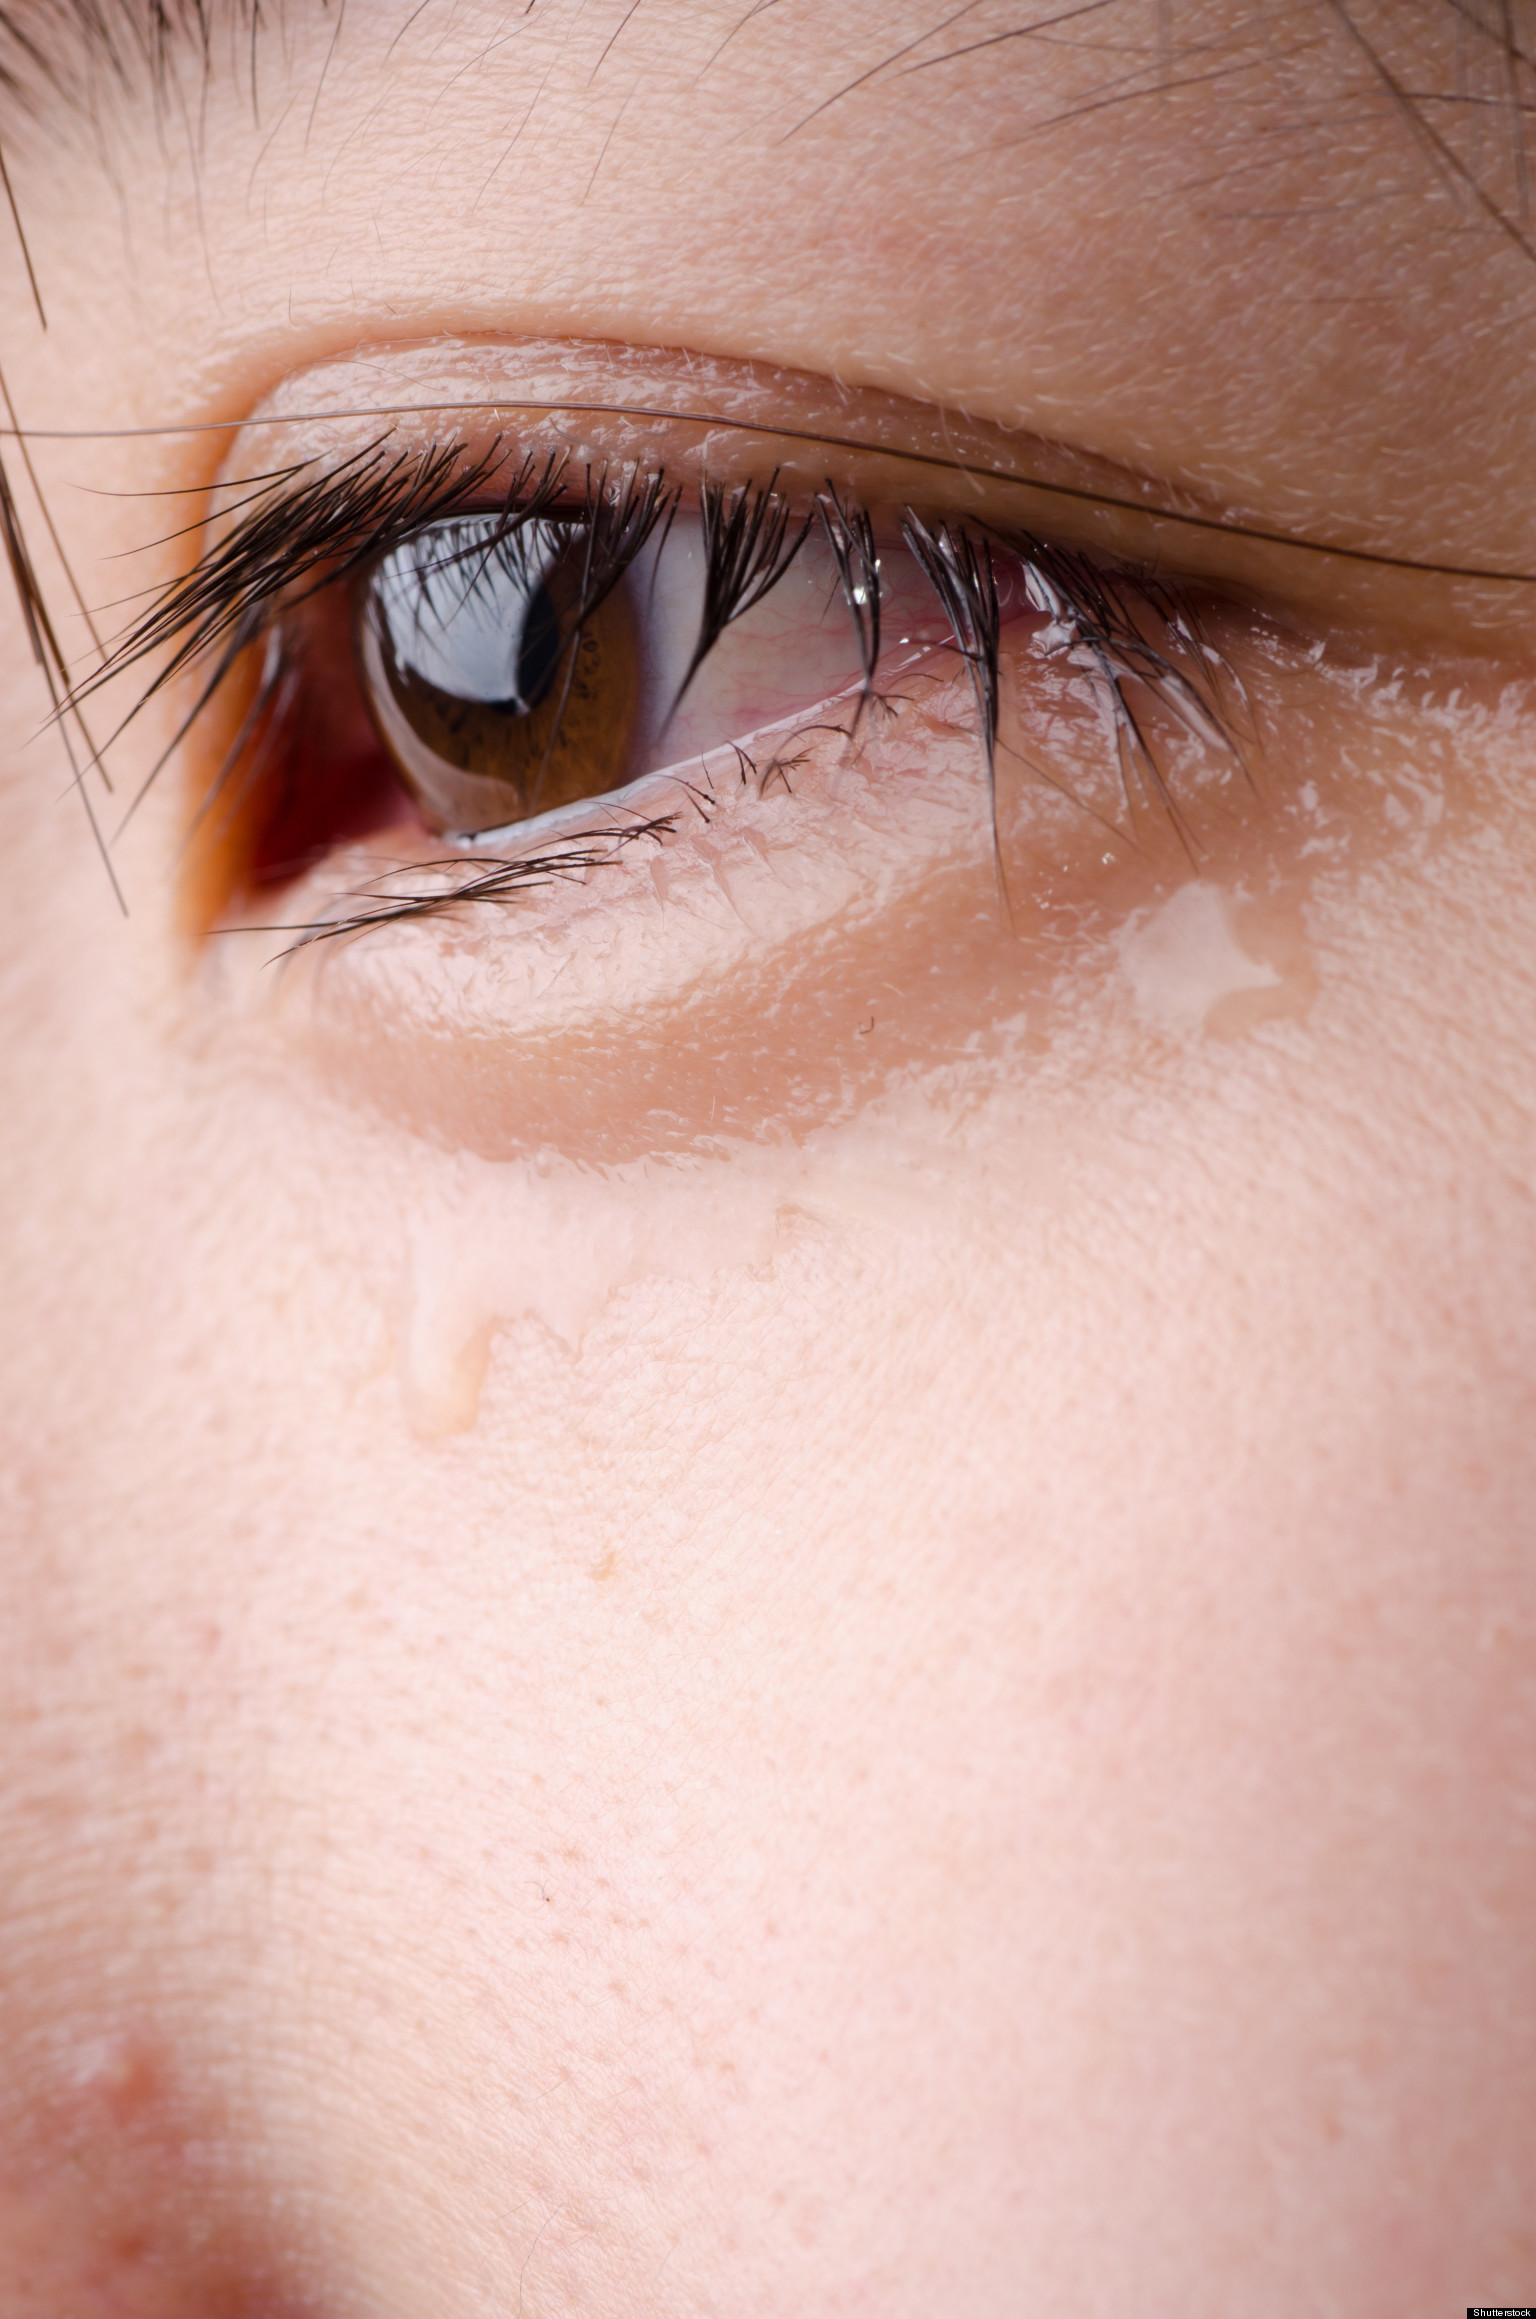 Crying science why do we shed tears when we 39 re sad - Sad girl pictures crying ...